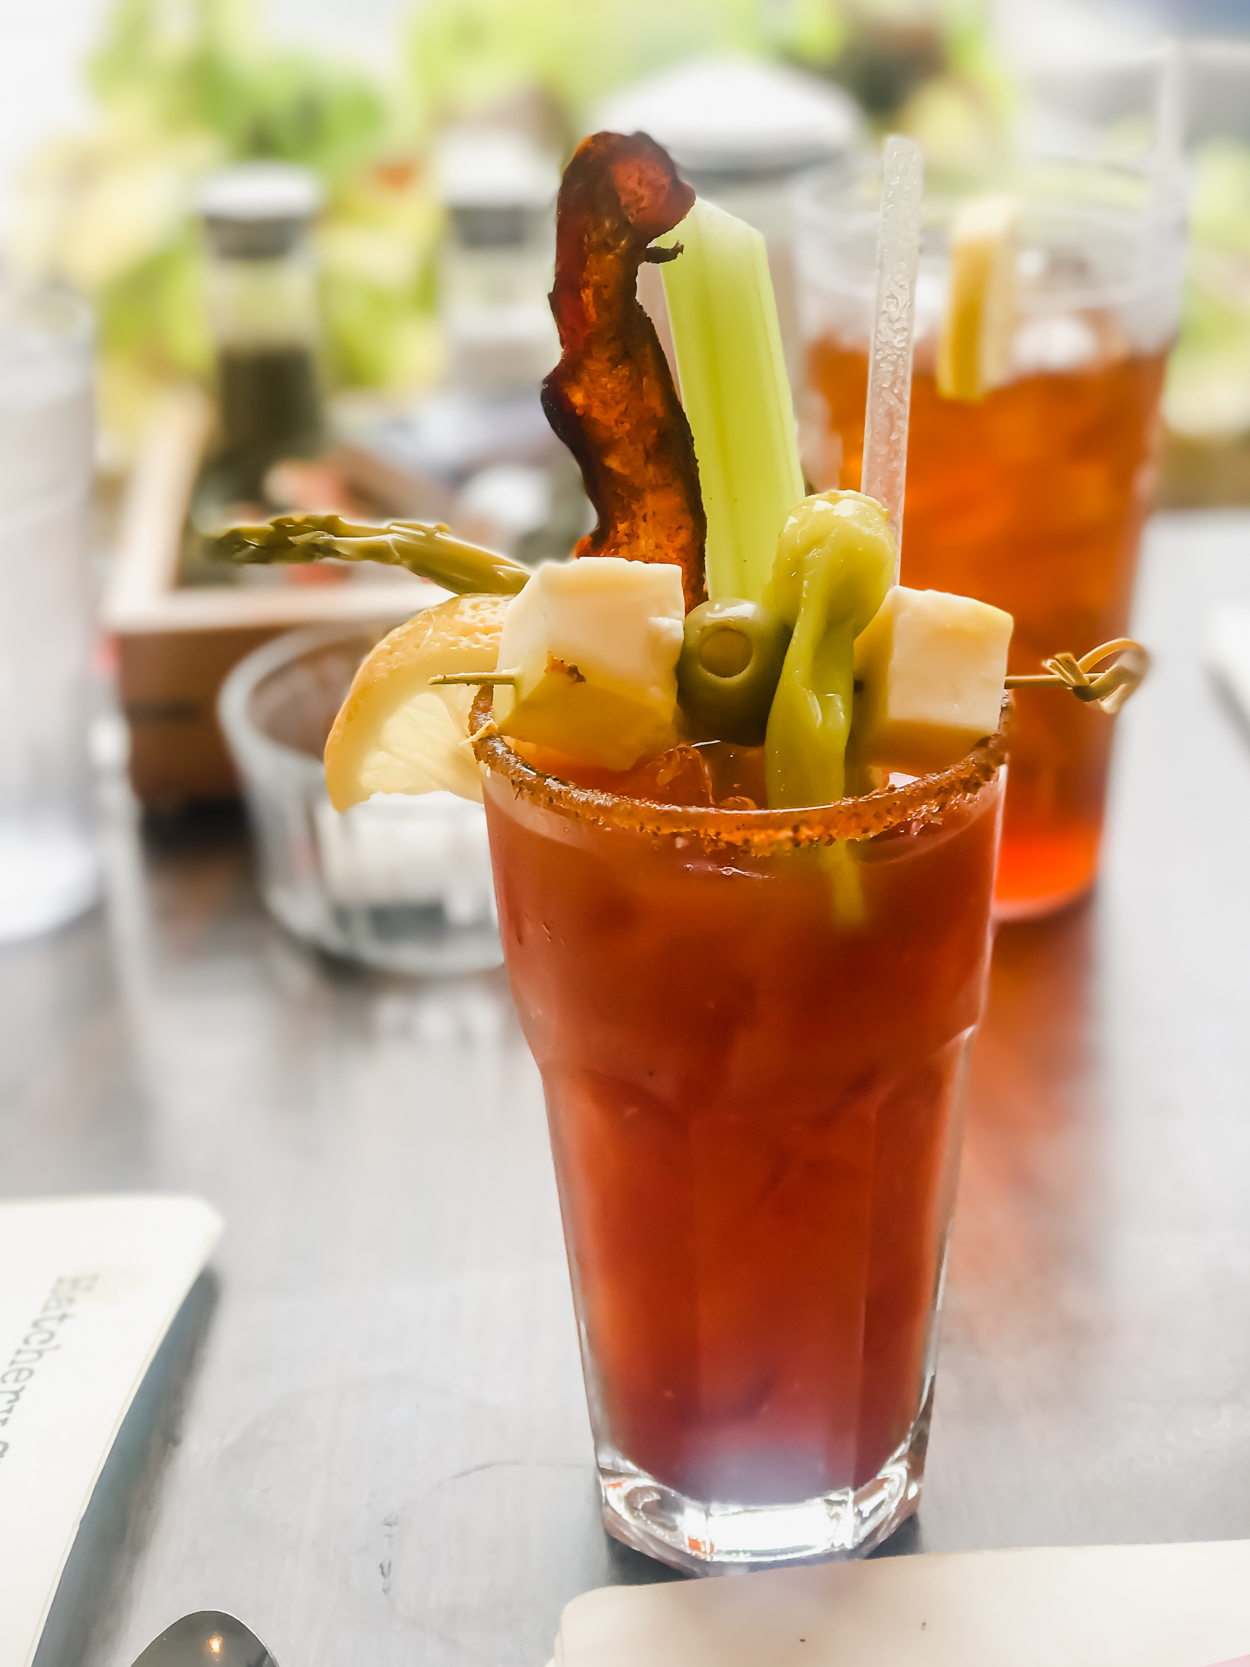 Bloody Mary Drink with bacon, asparagus, olive and cheese garnish on a table at Hatchery Restaurant in Ludlow Vermont